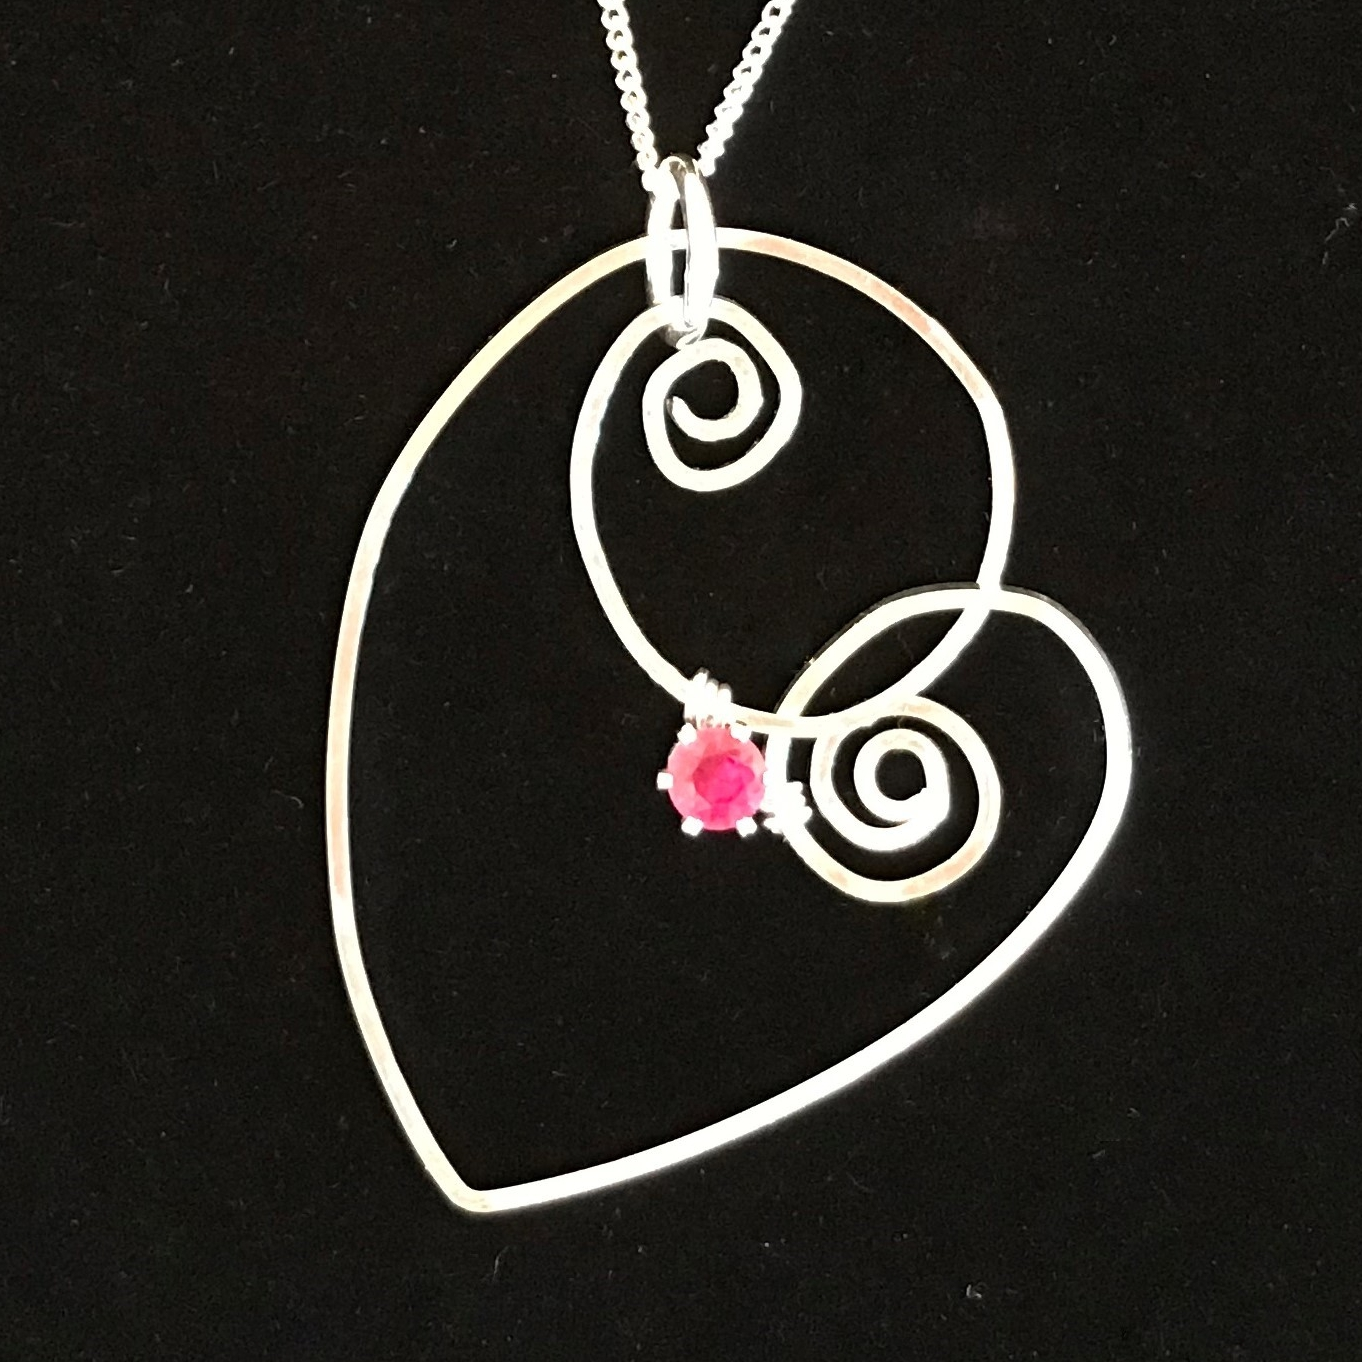 Jewelry for Valentine's Day with meaning